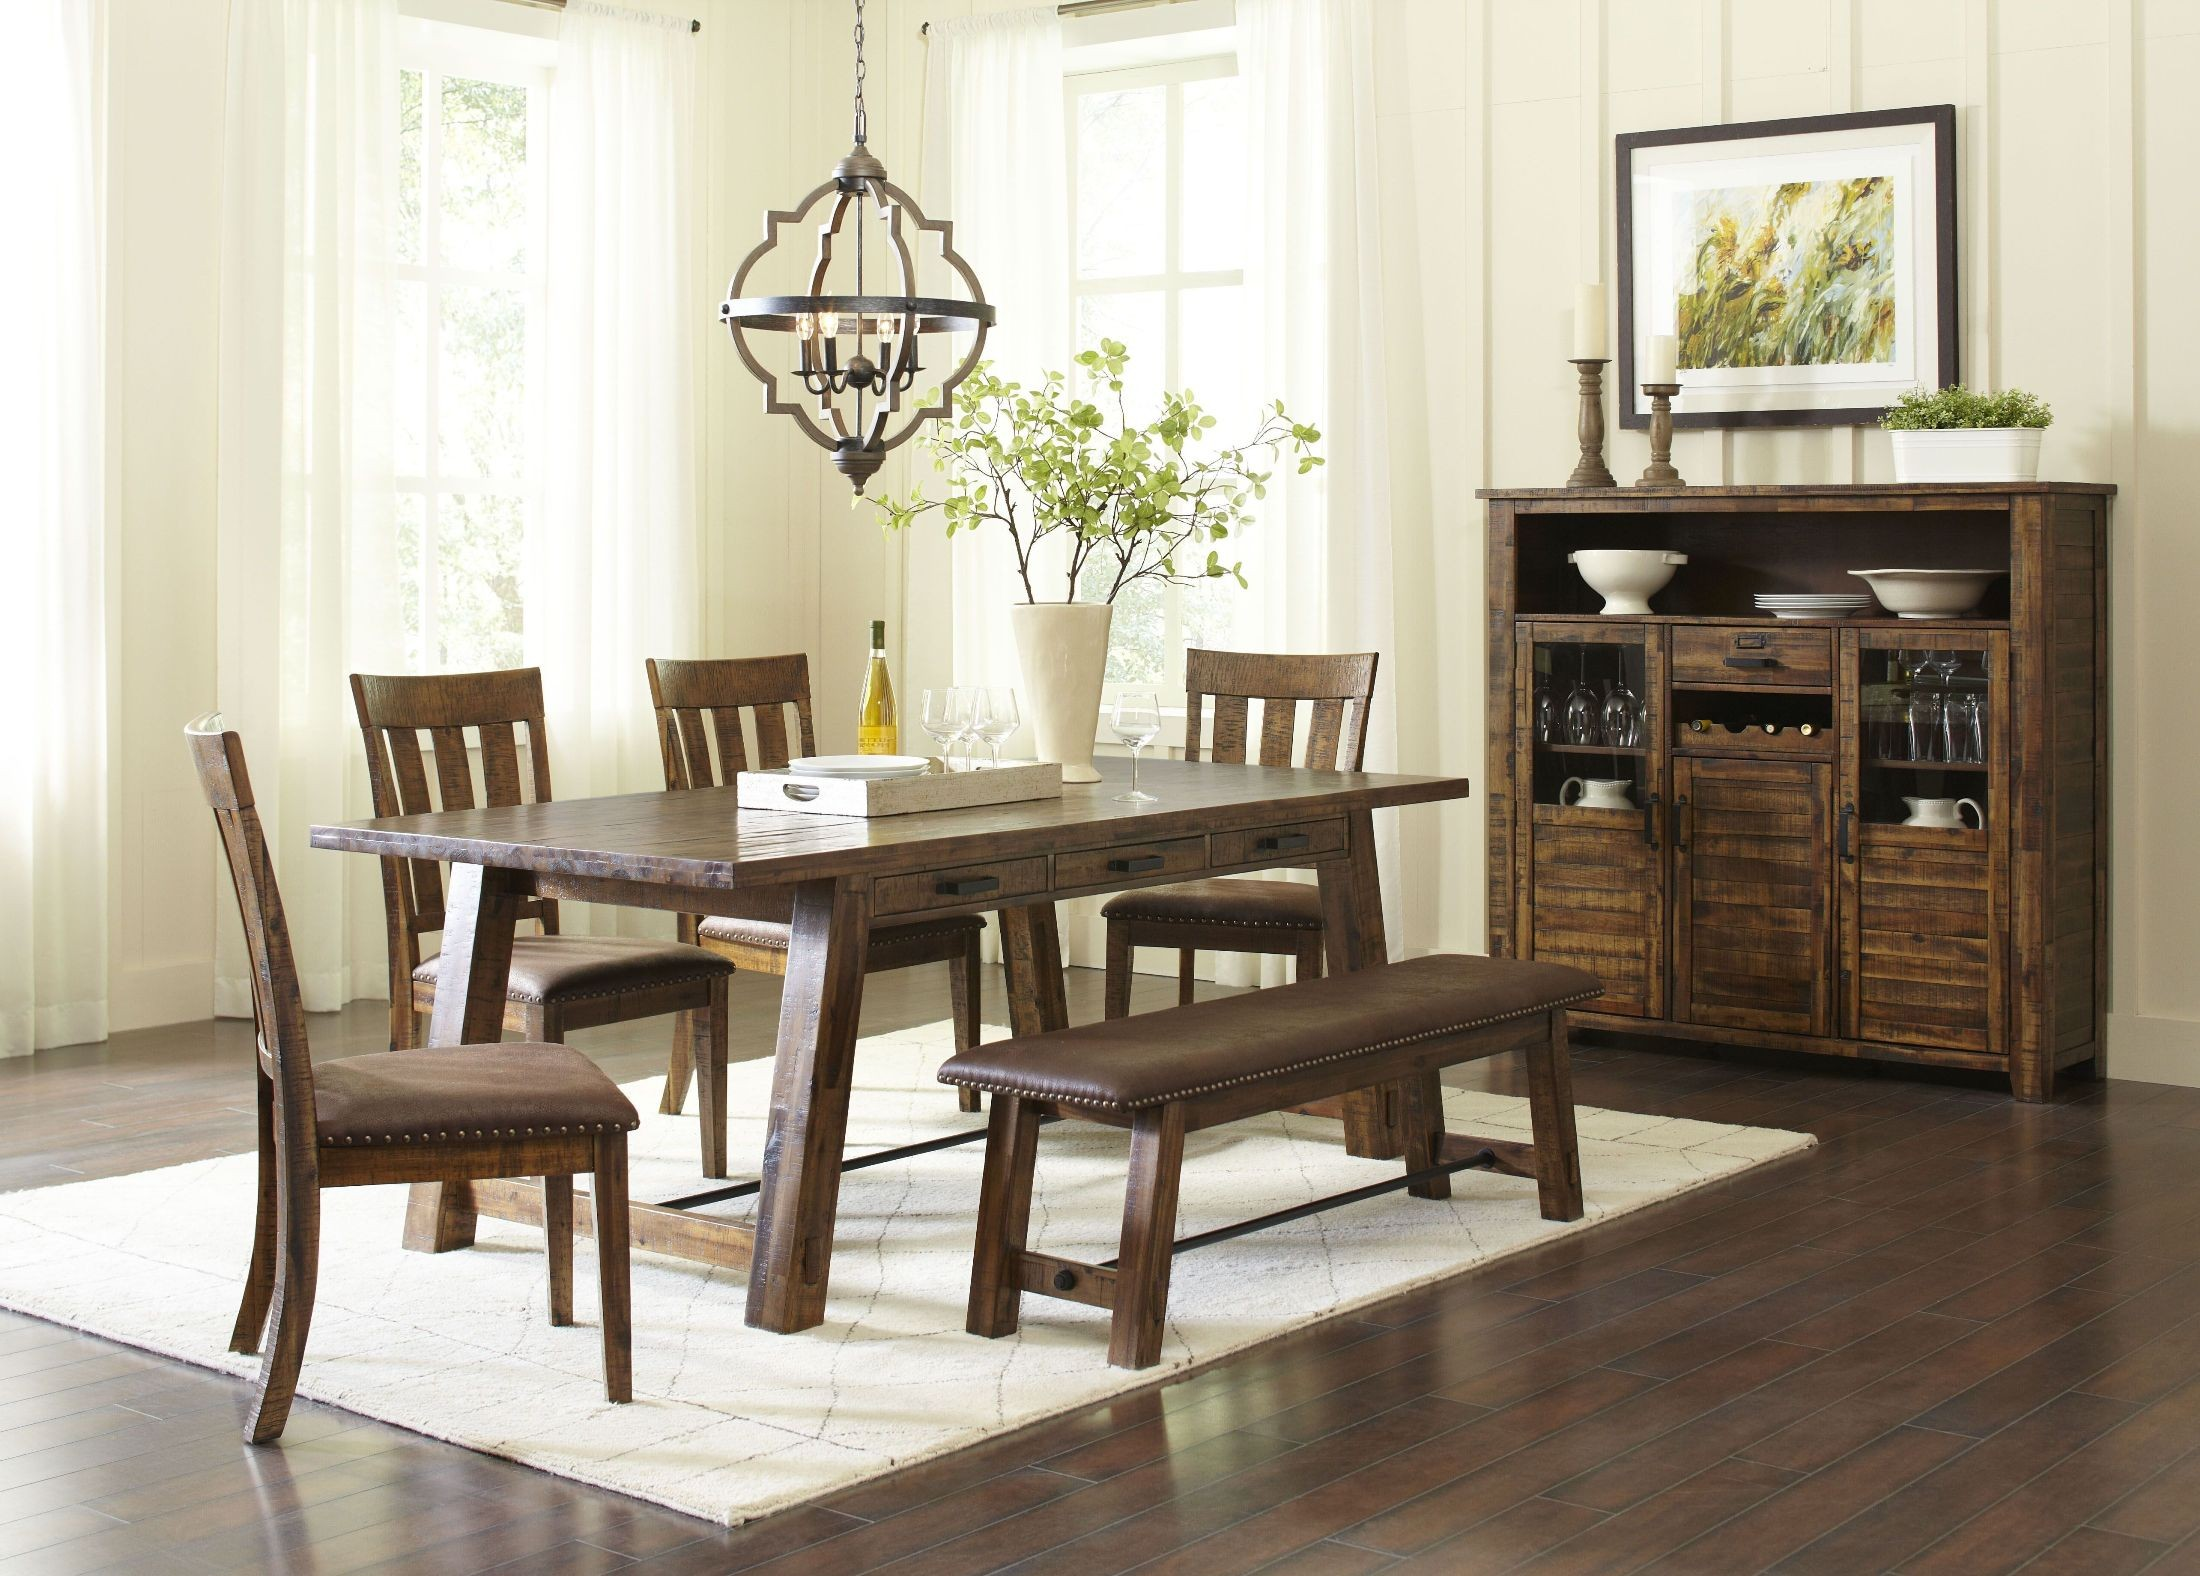 Cannon valley brown dining room set from jofran coleman for Brown dining room set